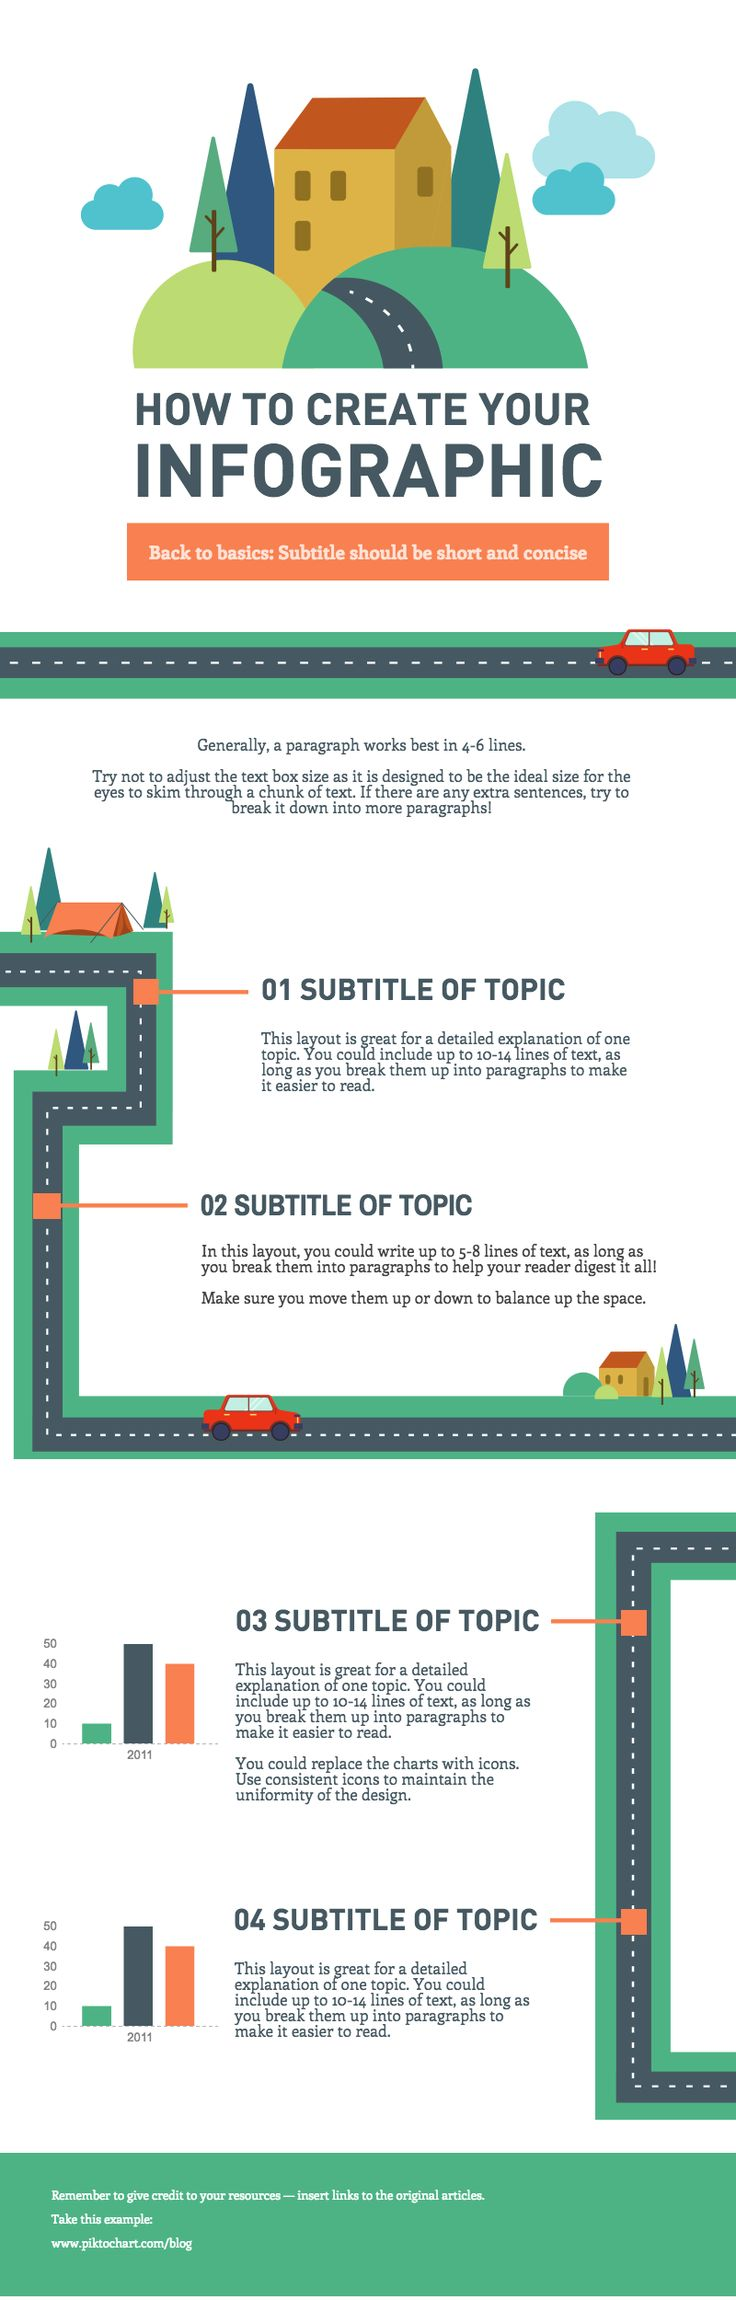 48 best 8 types of infographics images on pinterest create your timeline infographic roadmap basic by piktochart visualize the timeline progress of your project in a concise manner with this template gamestrikefo Image collections